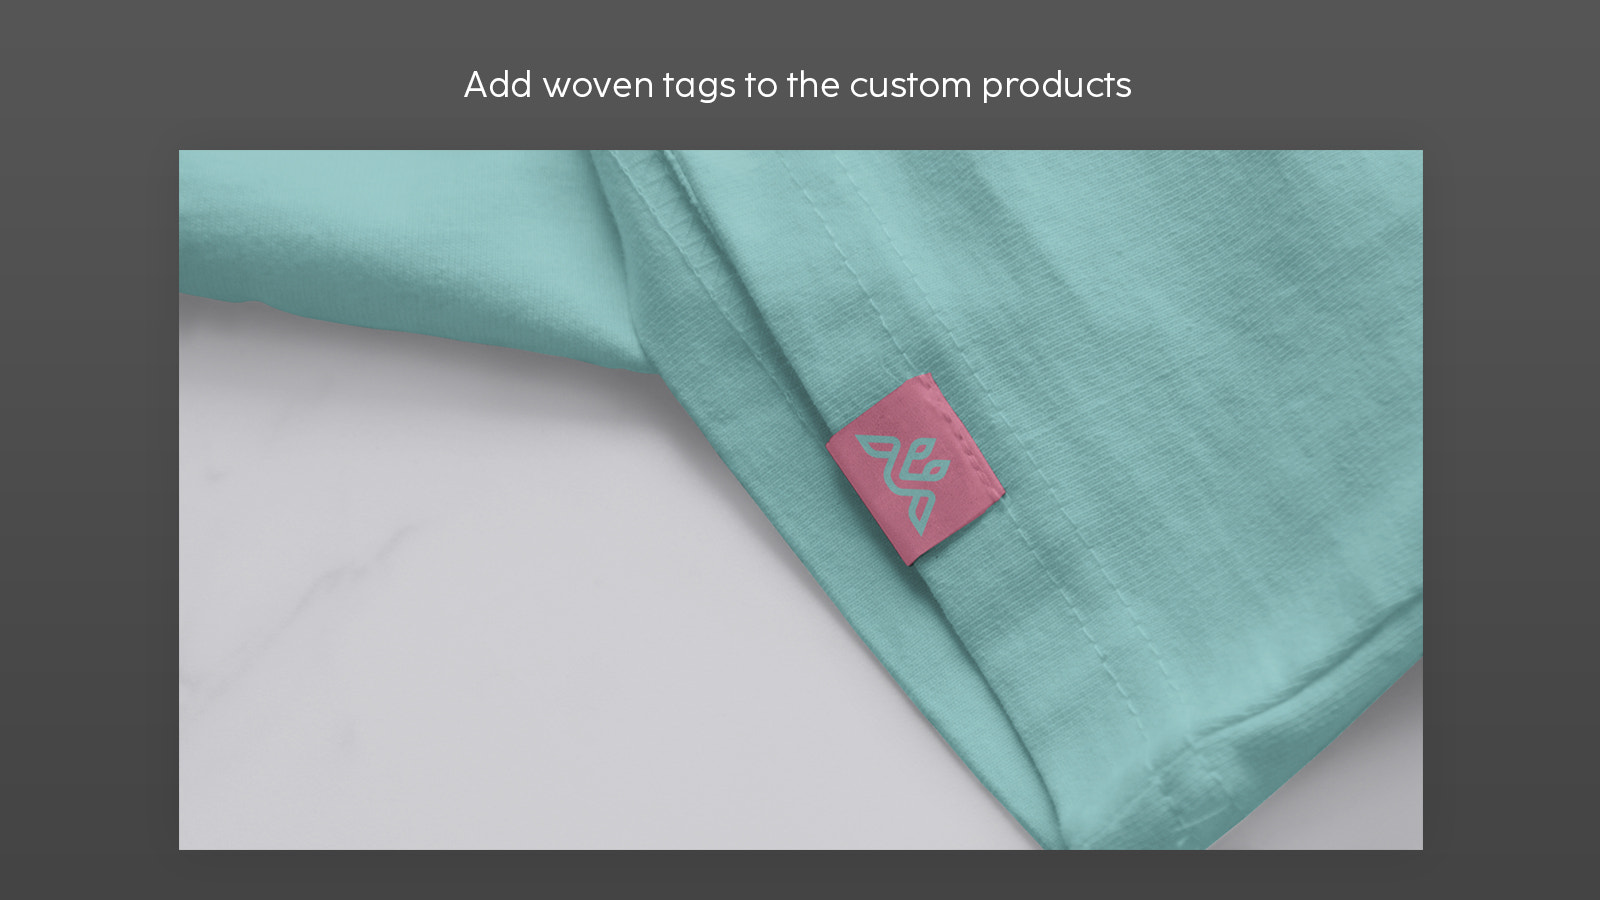 Add woven tags to the custom products